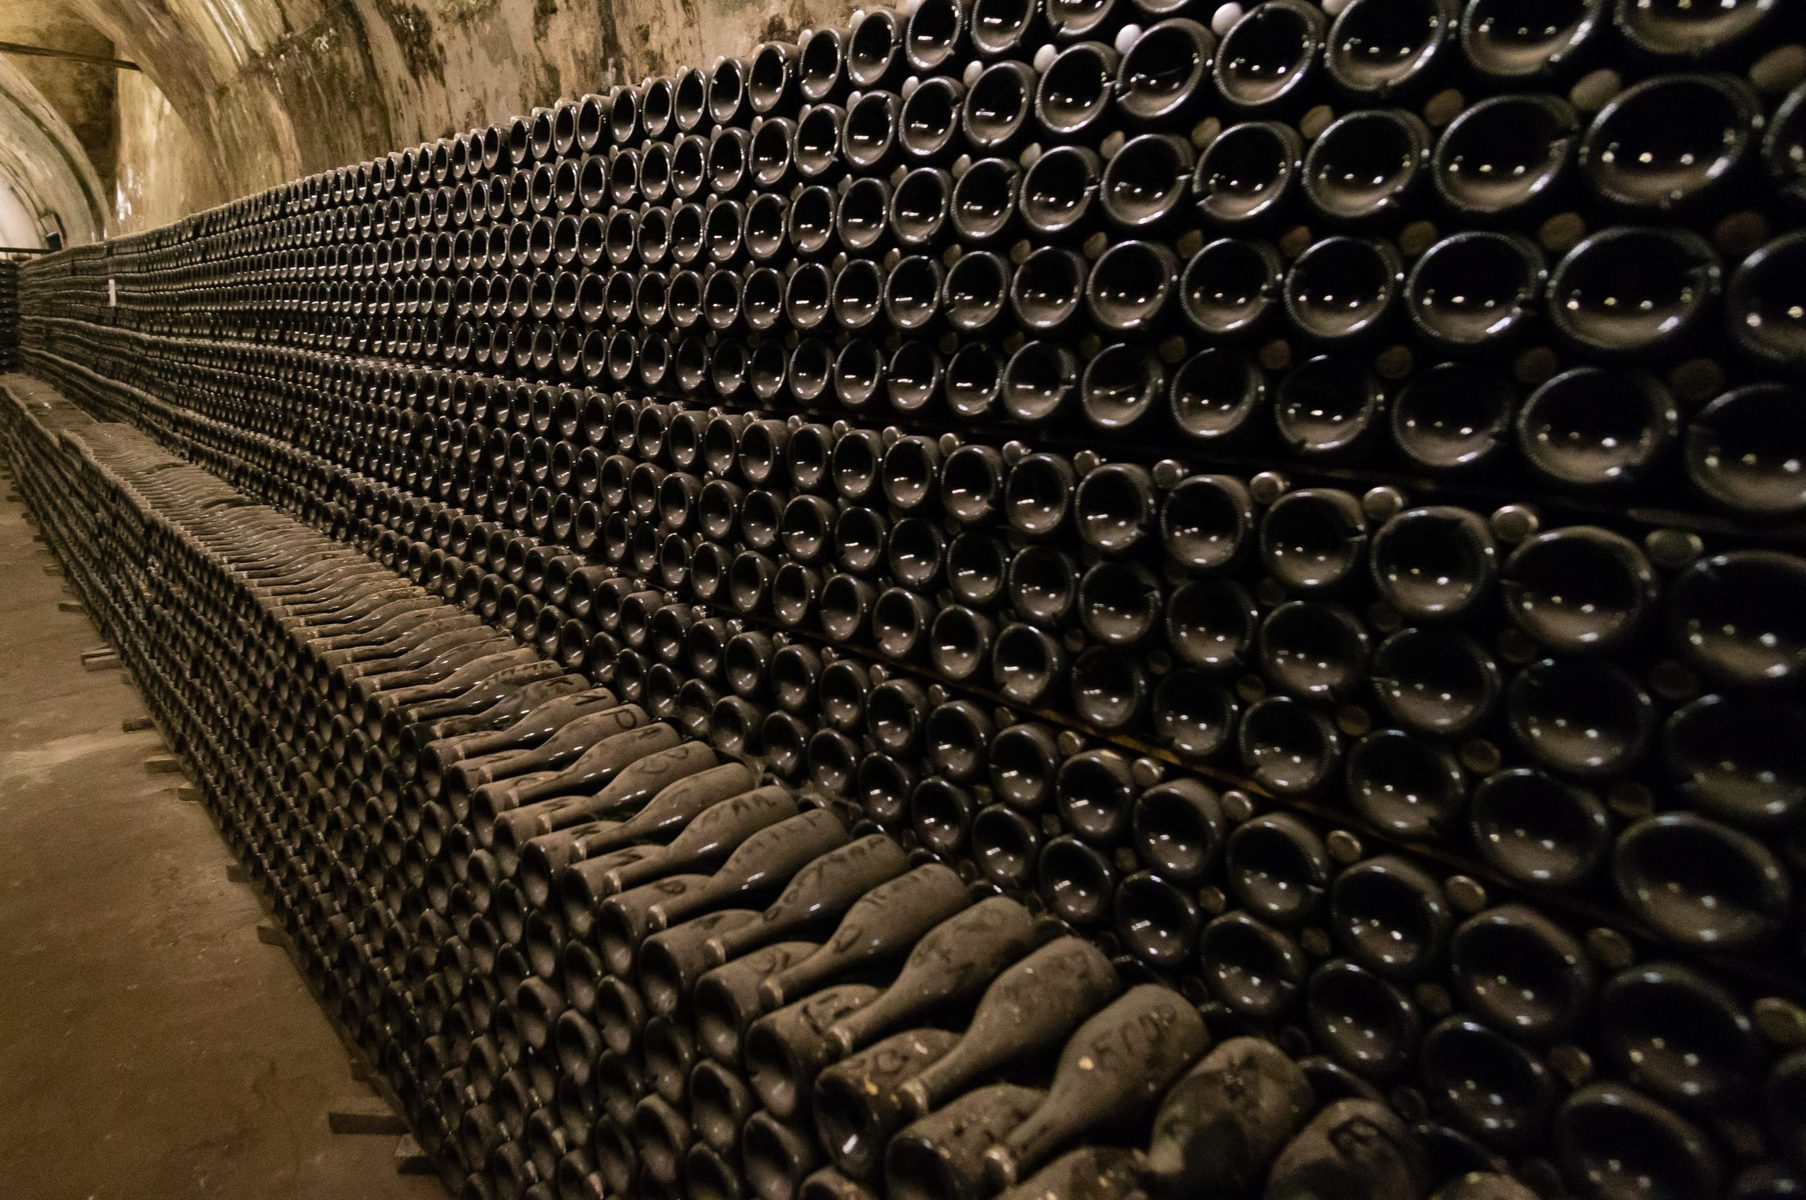 Champagne bottles stacked in cellar for lees aging